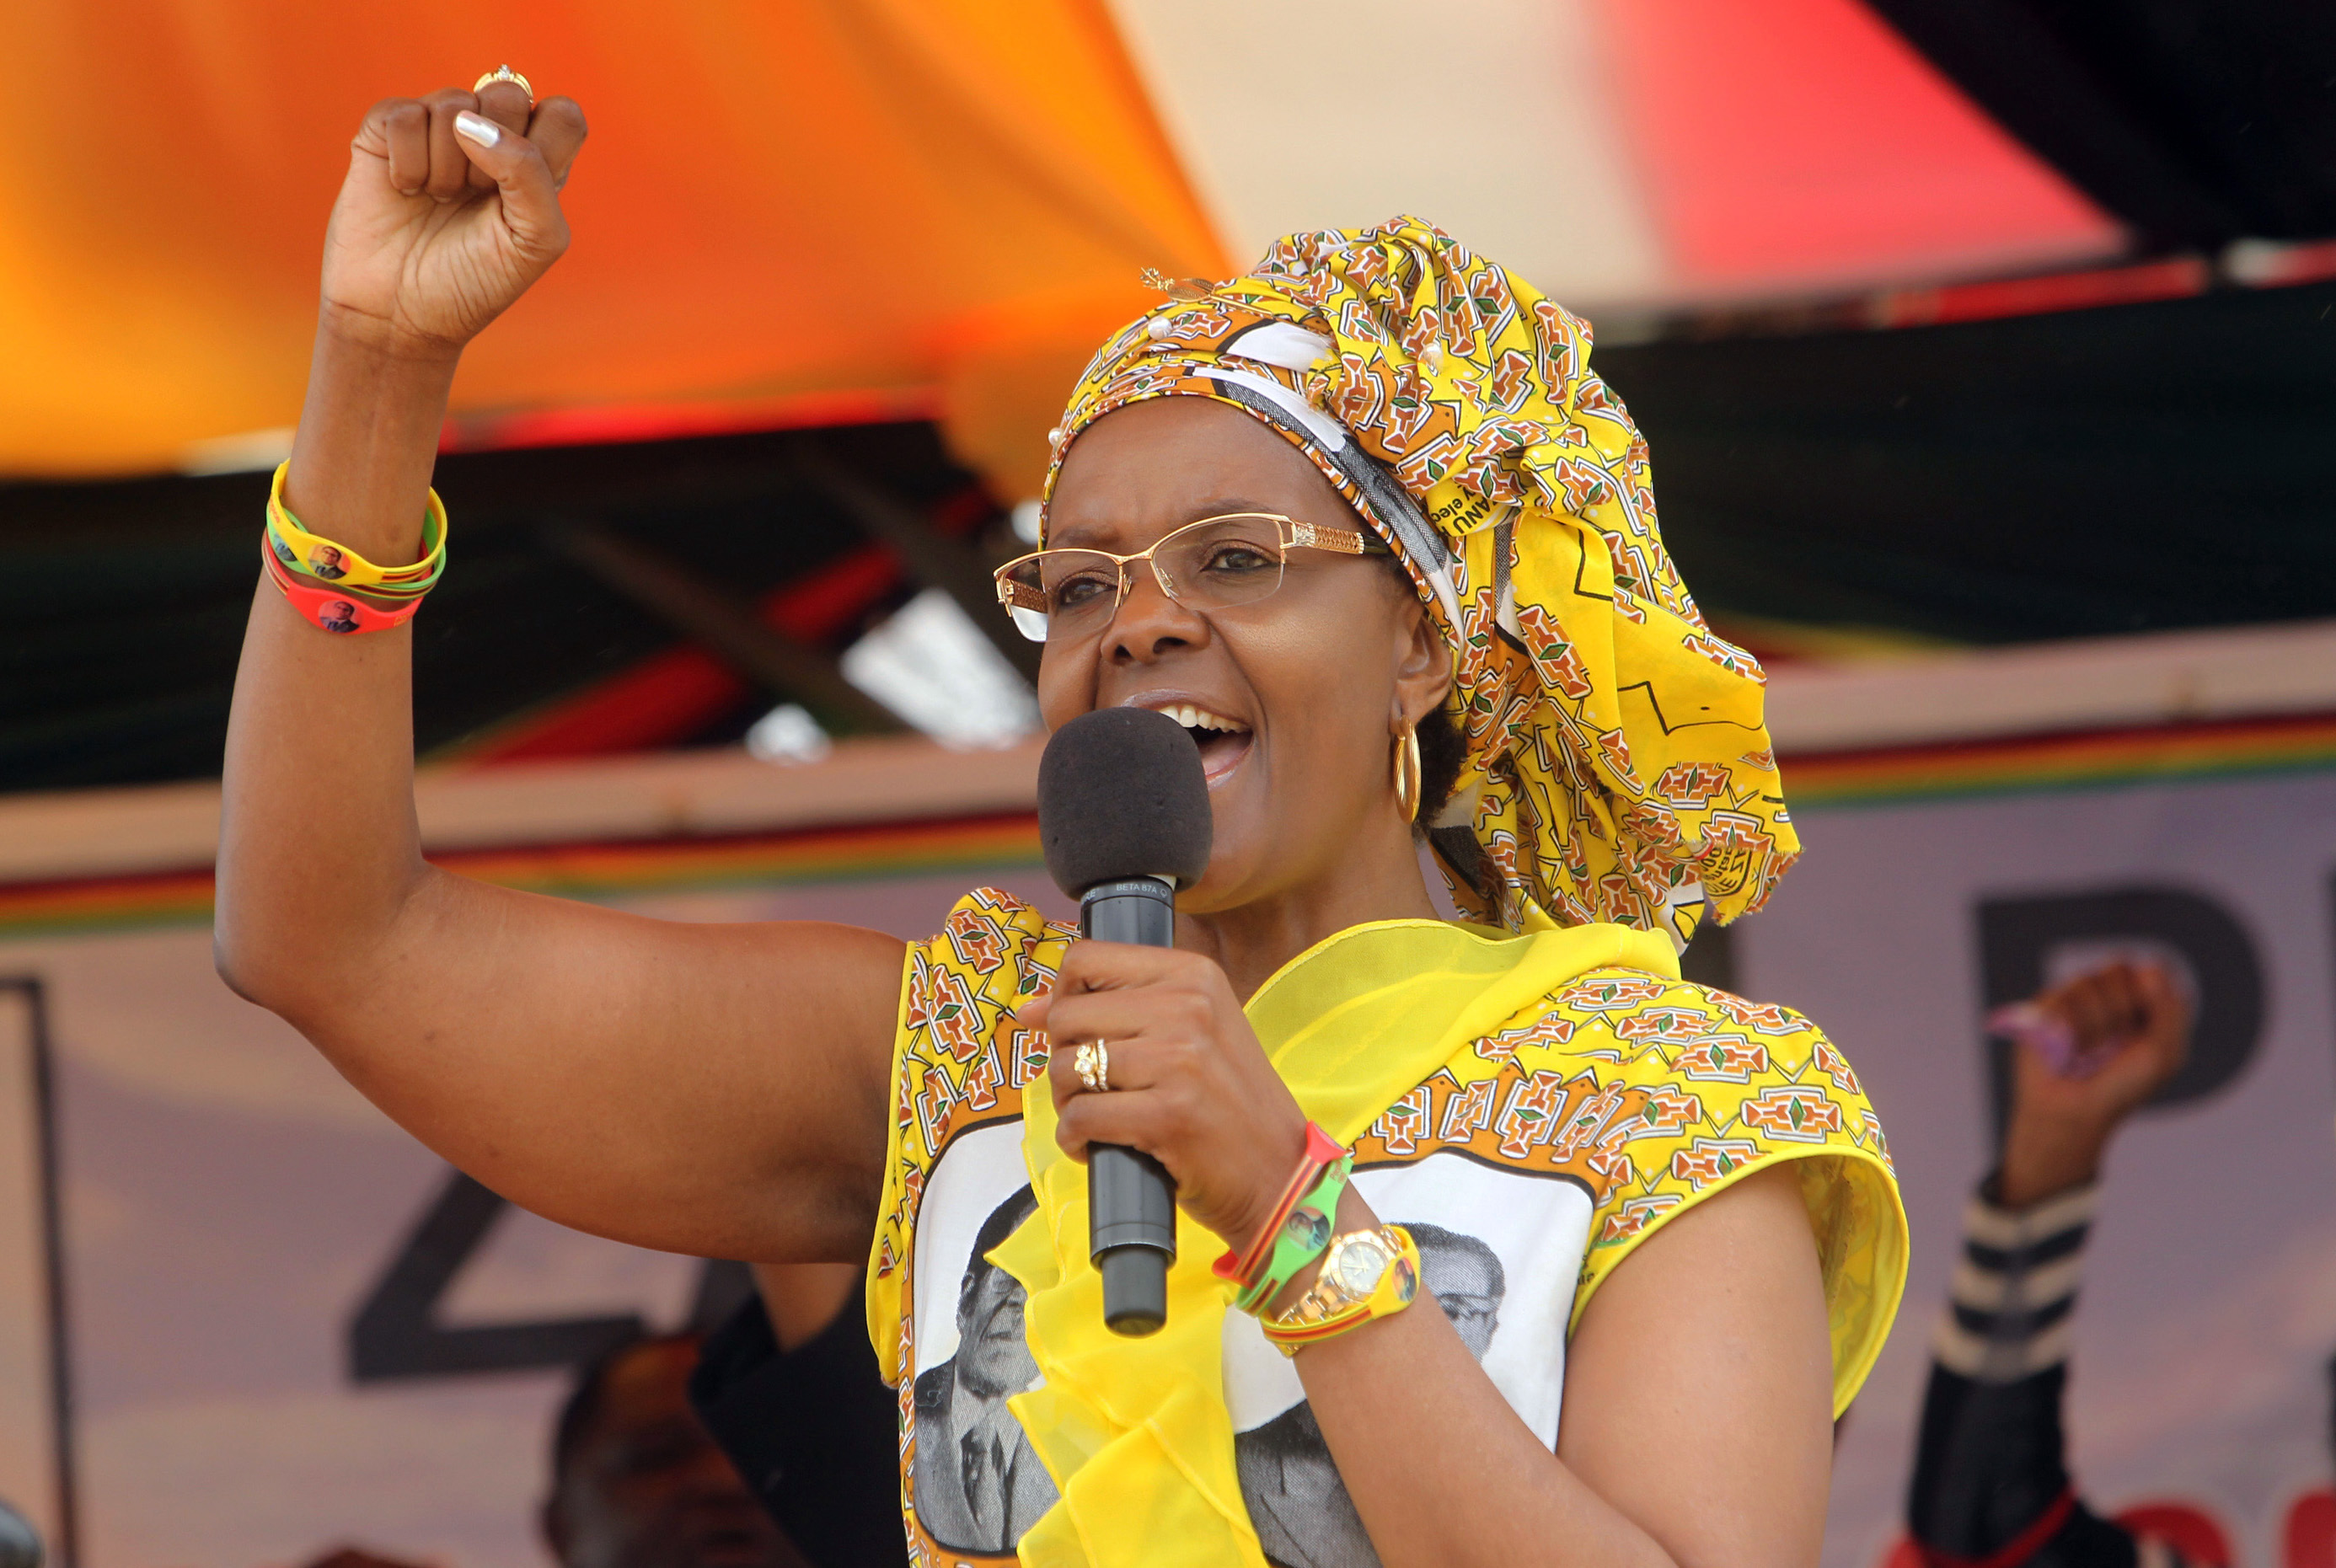 FILE - In this Thursday November 19, 2015 file photo, Zimbabwe's First Lady Grace Mugabe addresses party supporters at a rally in Harare, Mugabe is grabbing attention in Zimbabwe these days as she spends much of her time crisscrossing the country addressing supporters in remote areas. Photo: AP